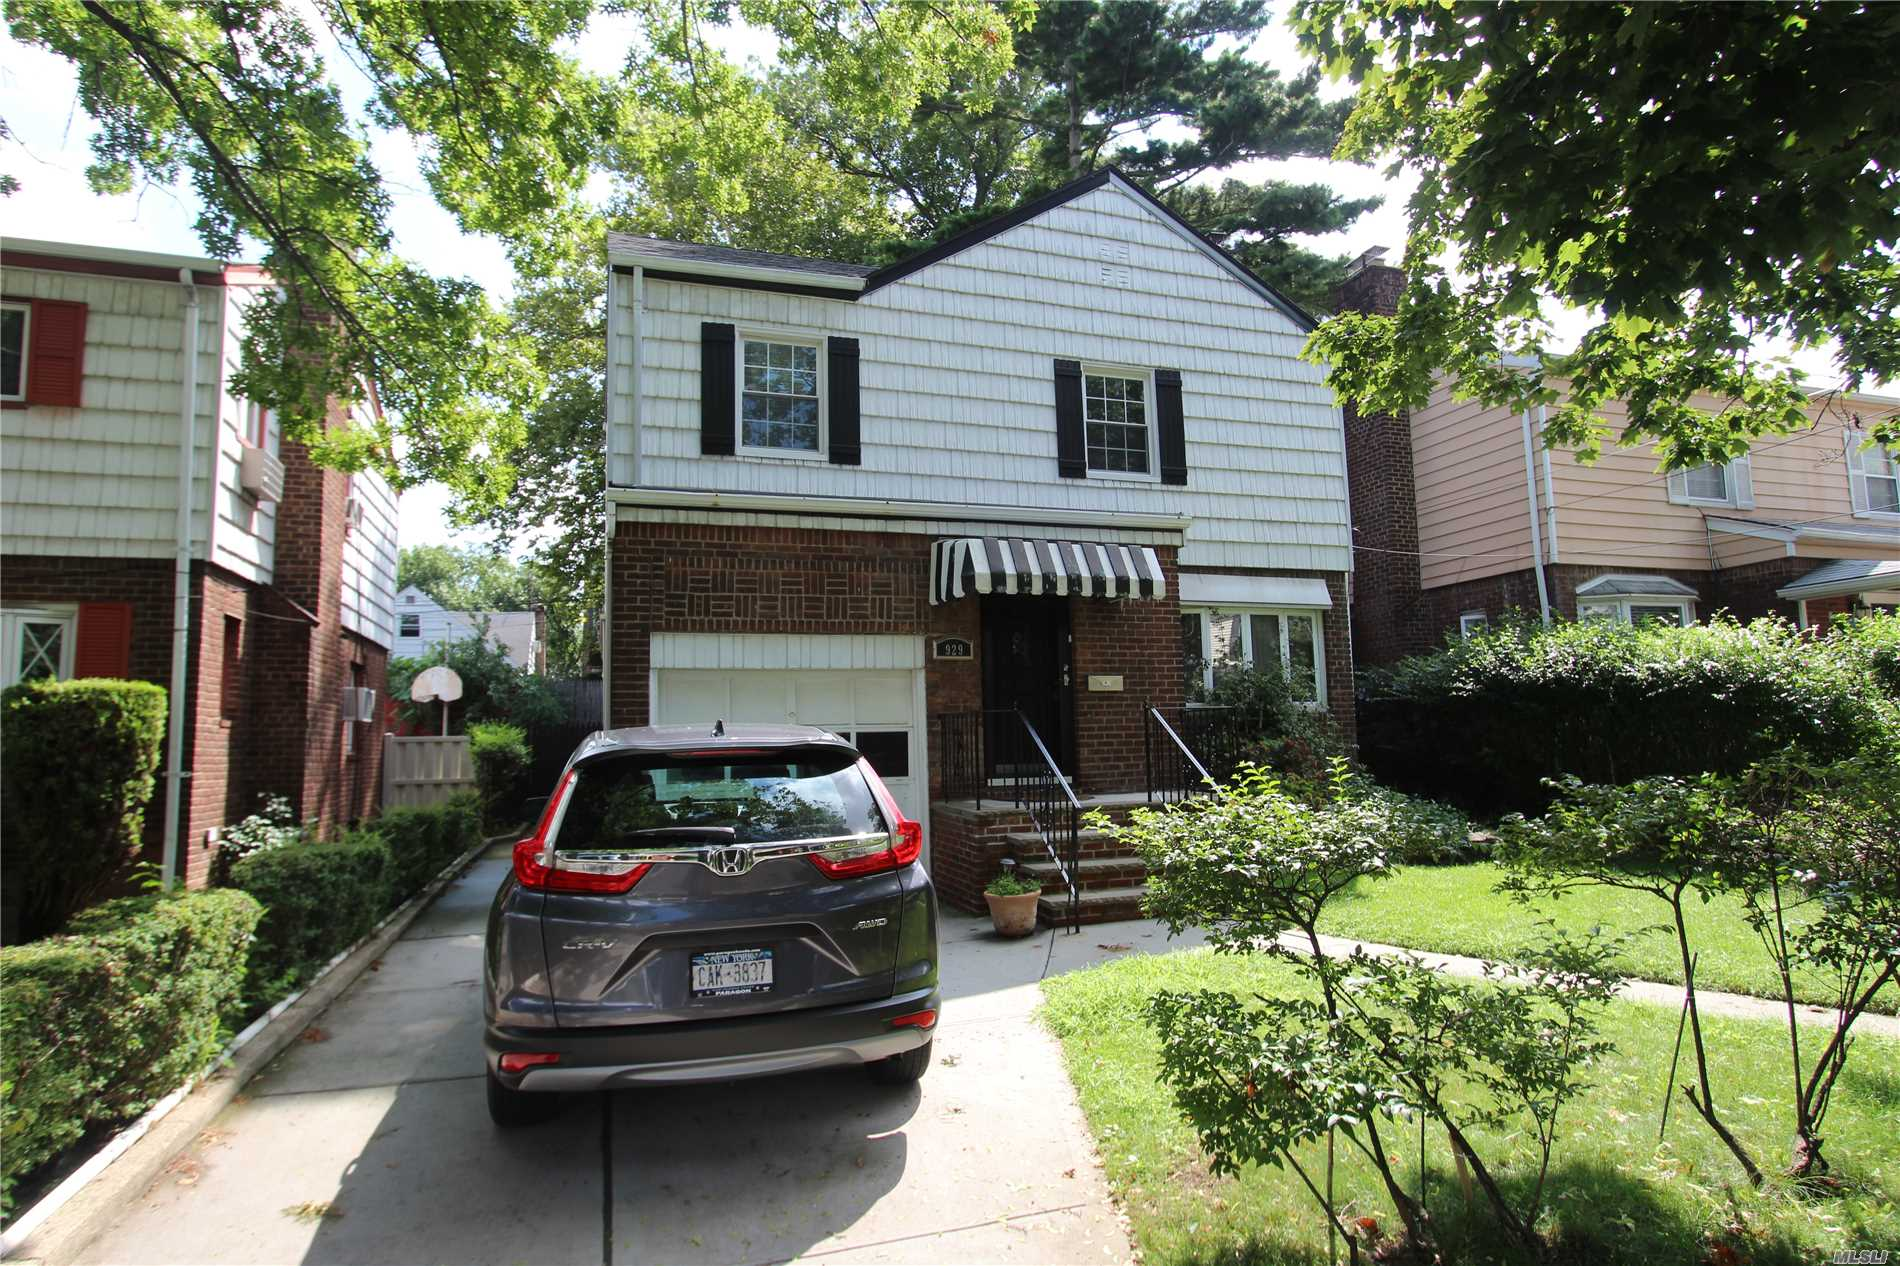 Detached 4 Bedroom - 2.5 Bath Colonial Style One Family Home In The College Estates Section. First Floor Features A Living Room W / Fireplace, Dining Room, Kitchen, Half Bath And A Handicap Accessible Bedroom With Full Bath. The Second Floor Has 3 Bedrooms And Bathroom W/ Jacuzzi Tub. There Is A Full Basement And A One Car Garage. Move-In Condition.